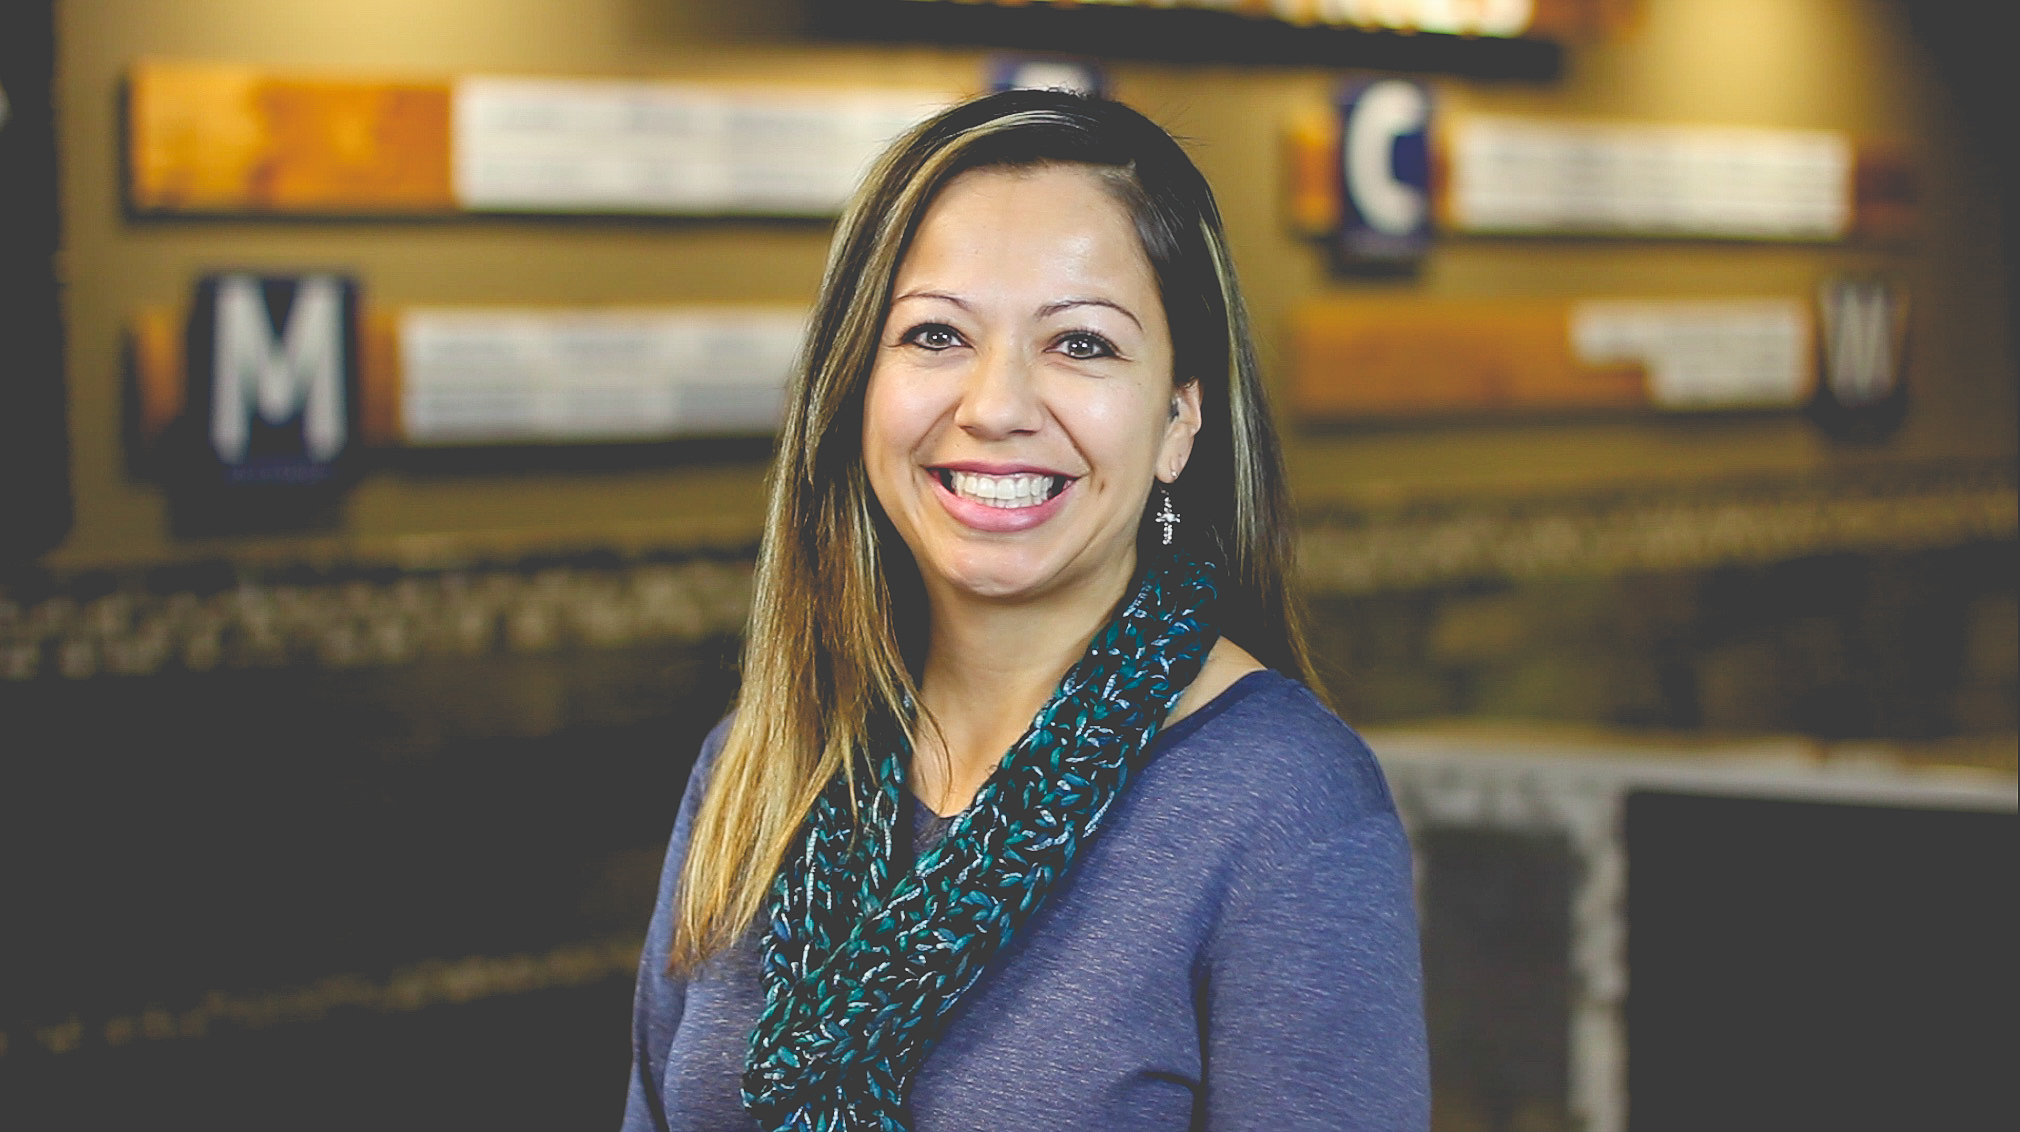 """My eyes, heart and soul have been opened to become a better vessel for God!  My whole life has changed since becoming involved at North Pole Worship Center! My life is full of LOVE and EBULLIENCE (a word I learned at our Safe Harbor ToastMasters group!) like I have never felt before. A couple of years ago I decided to get plugged in and become a volunteer at NPWC. I currently serve in children's ministry, Awana, HUB groups, and wherever else I can!   I am now so excited for what God has in store for me and look forward to all things to come!""  -Christina"